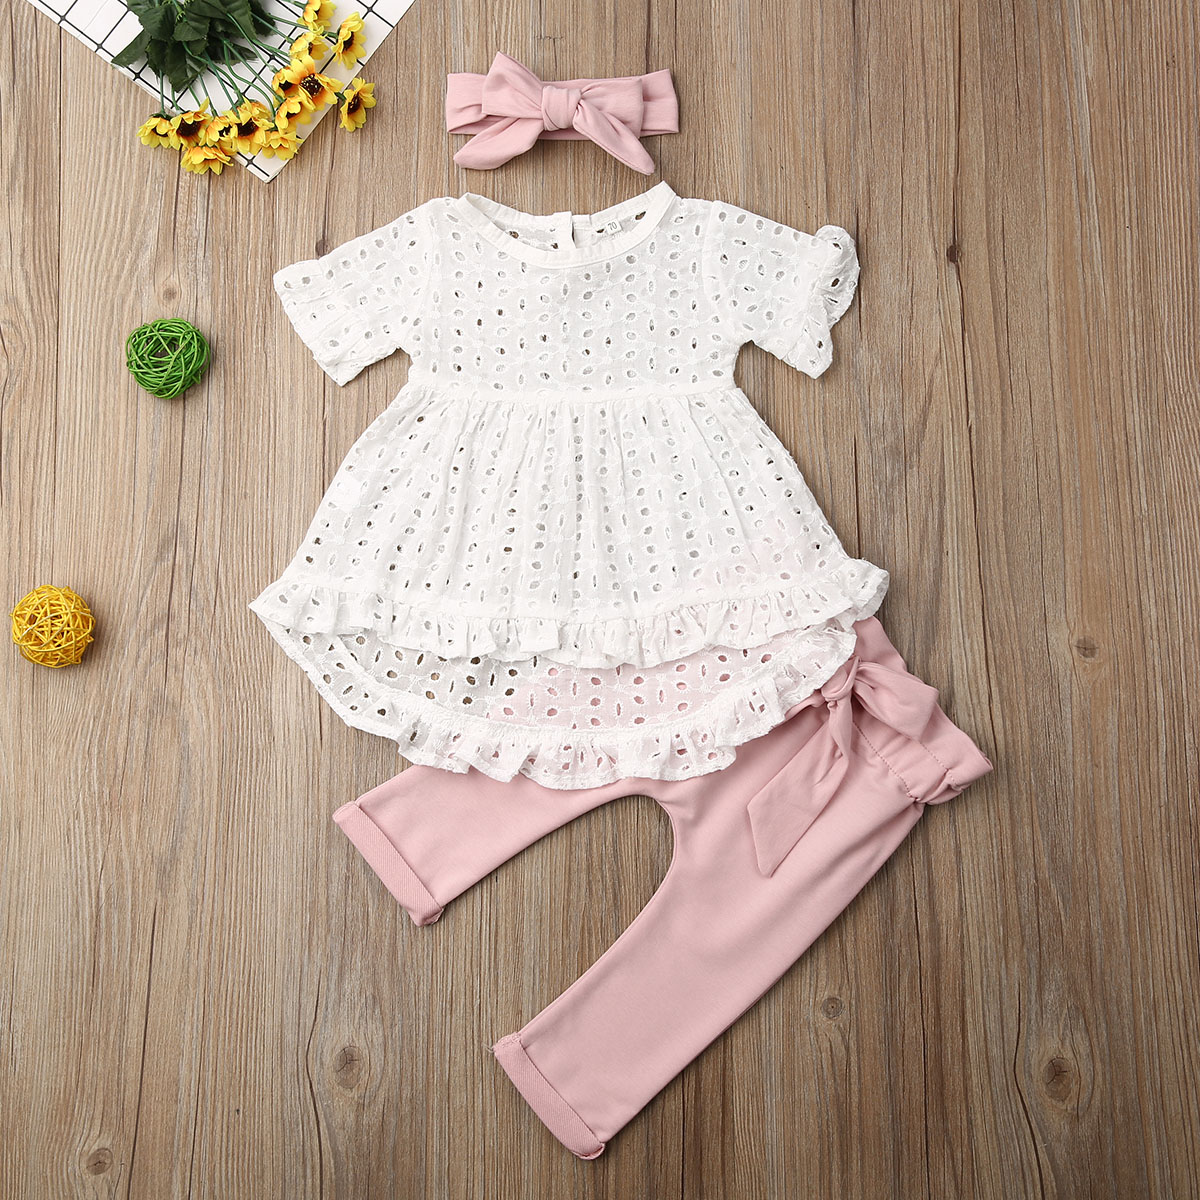 Pudcoco Newborn Baby Girl Clothes Solid Color Lace Flower Ruffle Tops Long Pants Headband 3Pcs Outfits Cotton Casual Clothes